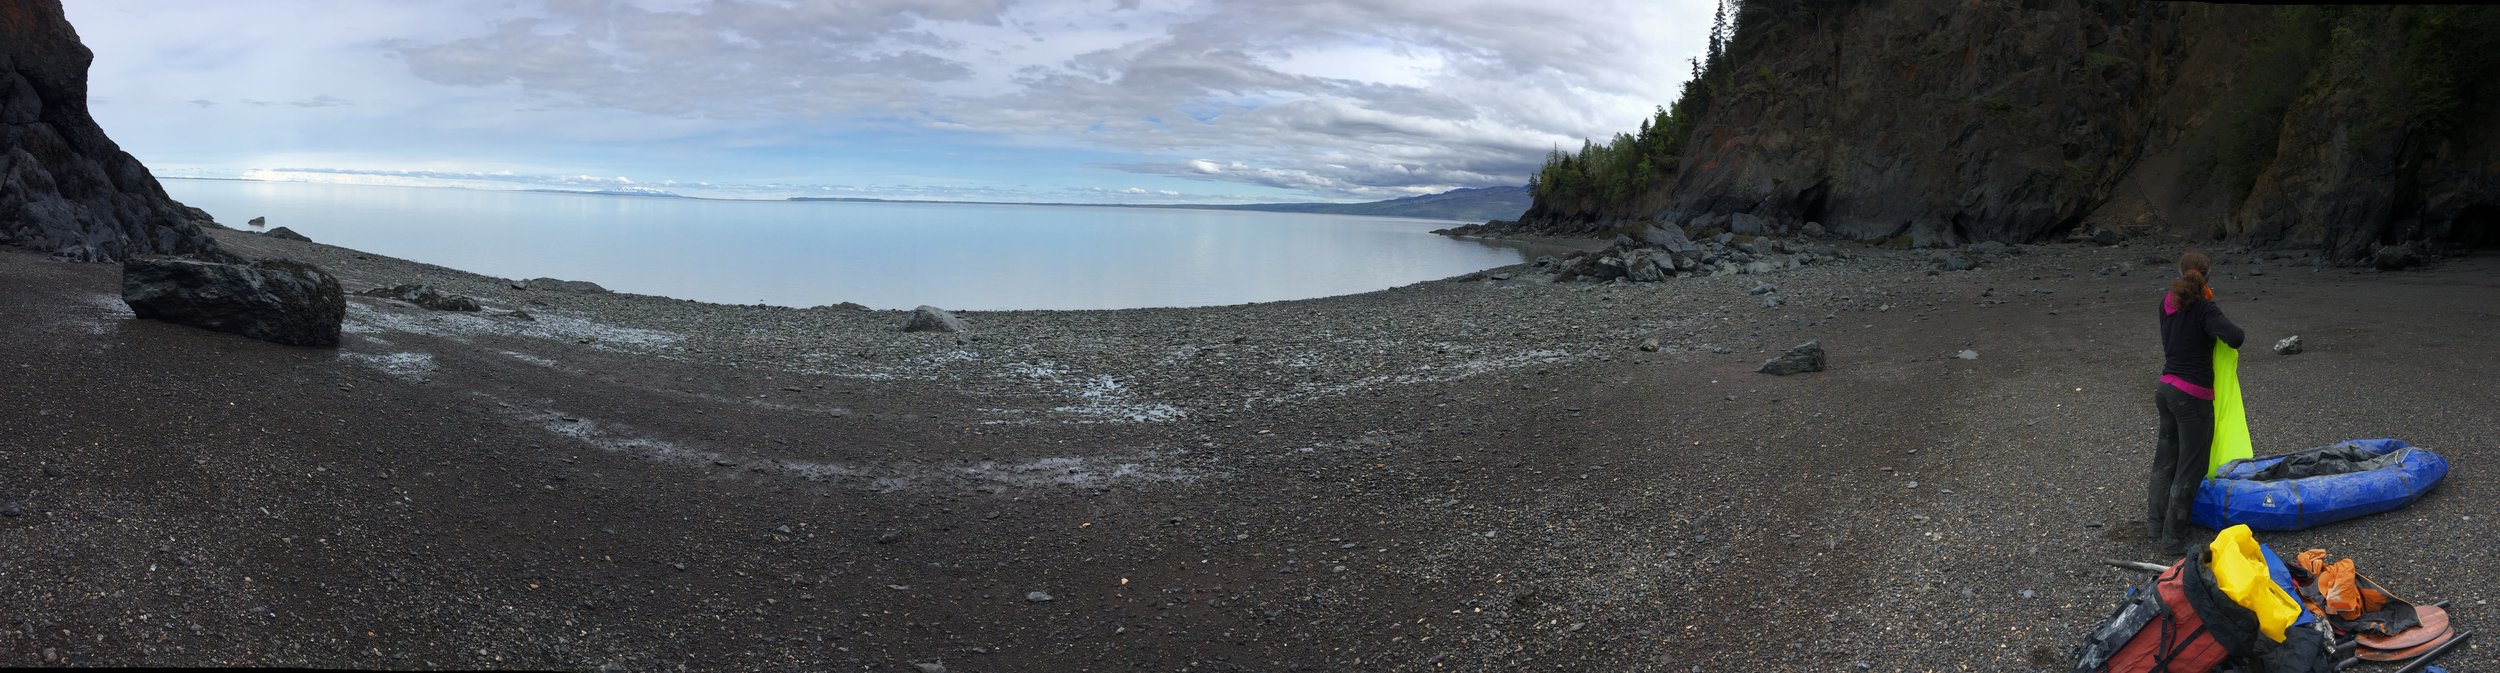 We walked the beach of Turnagain Arm for about a mile toward Hope while waiting for the tide to switch from ebb to flood. We launched the boats right at low slack tide (Fire Island -1.3 ft), which happened about one hour later than the predicted low tide at Fire Island